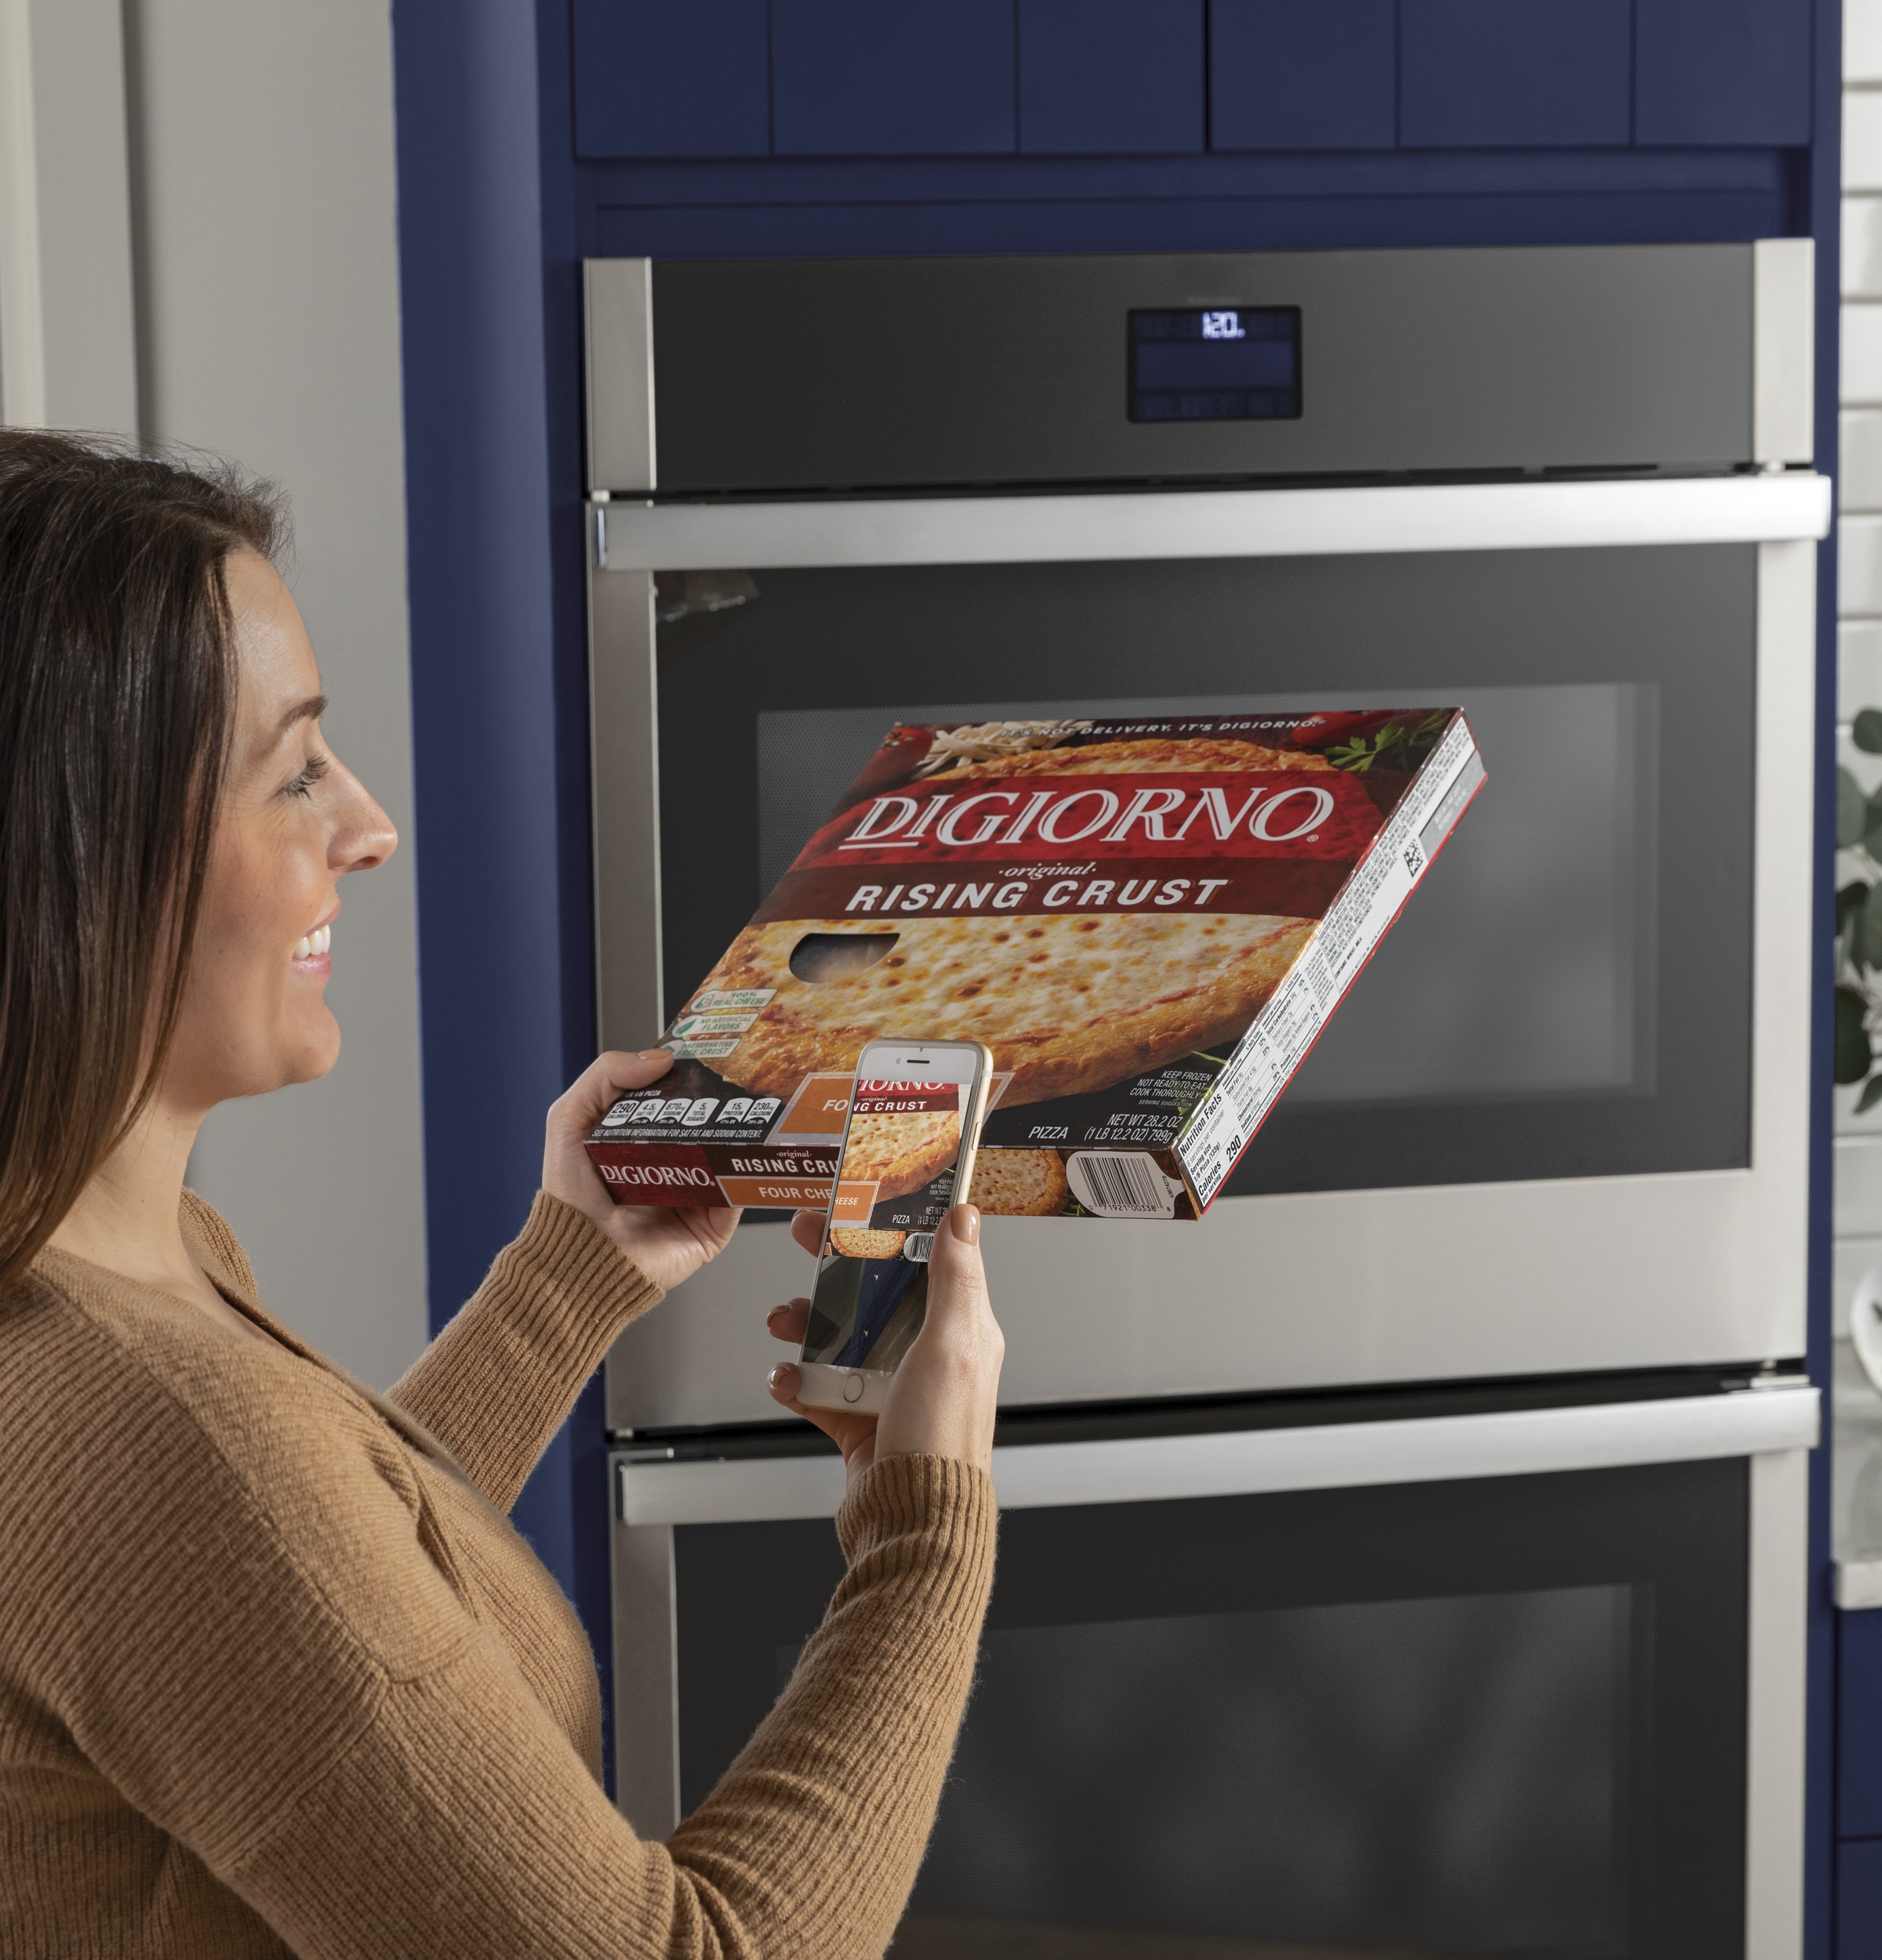 """Model: JTD3000SNSS   GE GE® 30"""" Smart Built-In Self-Clean Double Wall Oven with Never-Scrub Racks"""